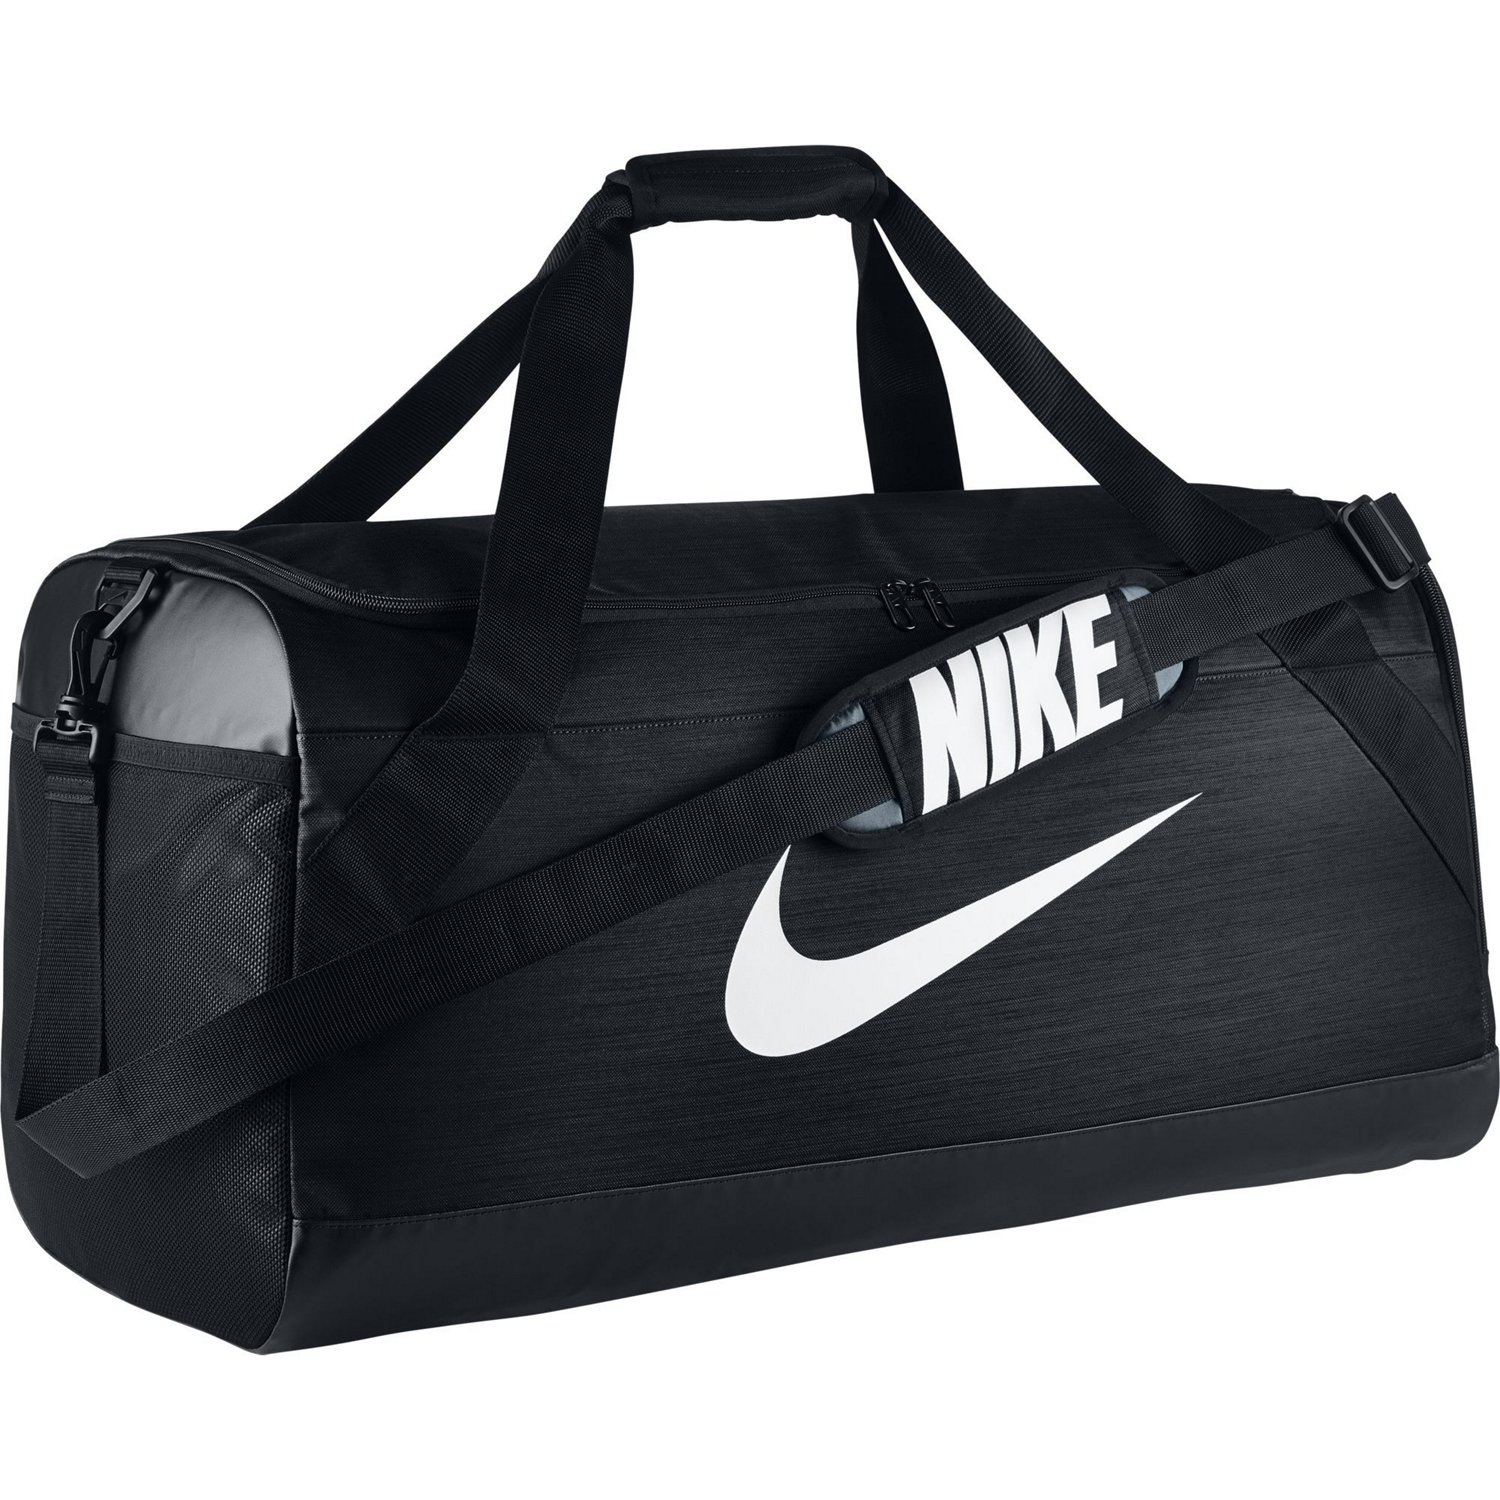 a73722d1ce2e Display product reviews for Nike Brasilia Large Duffel Bag